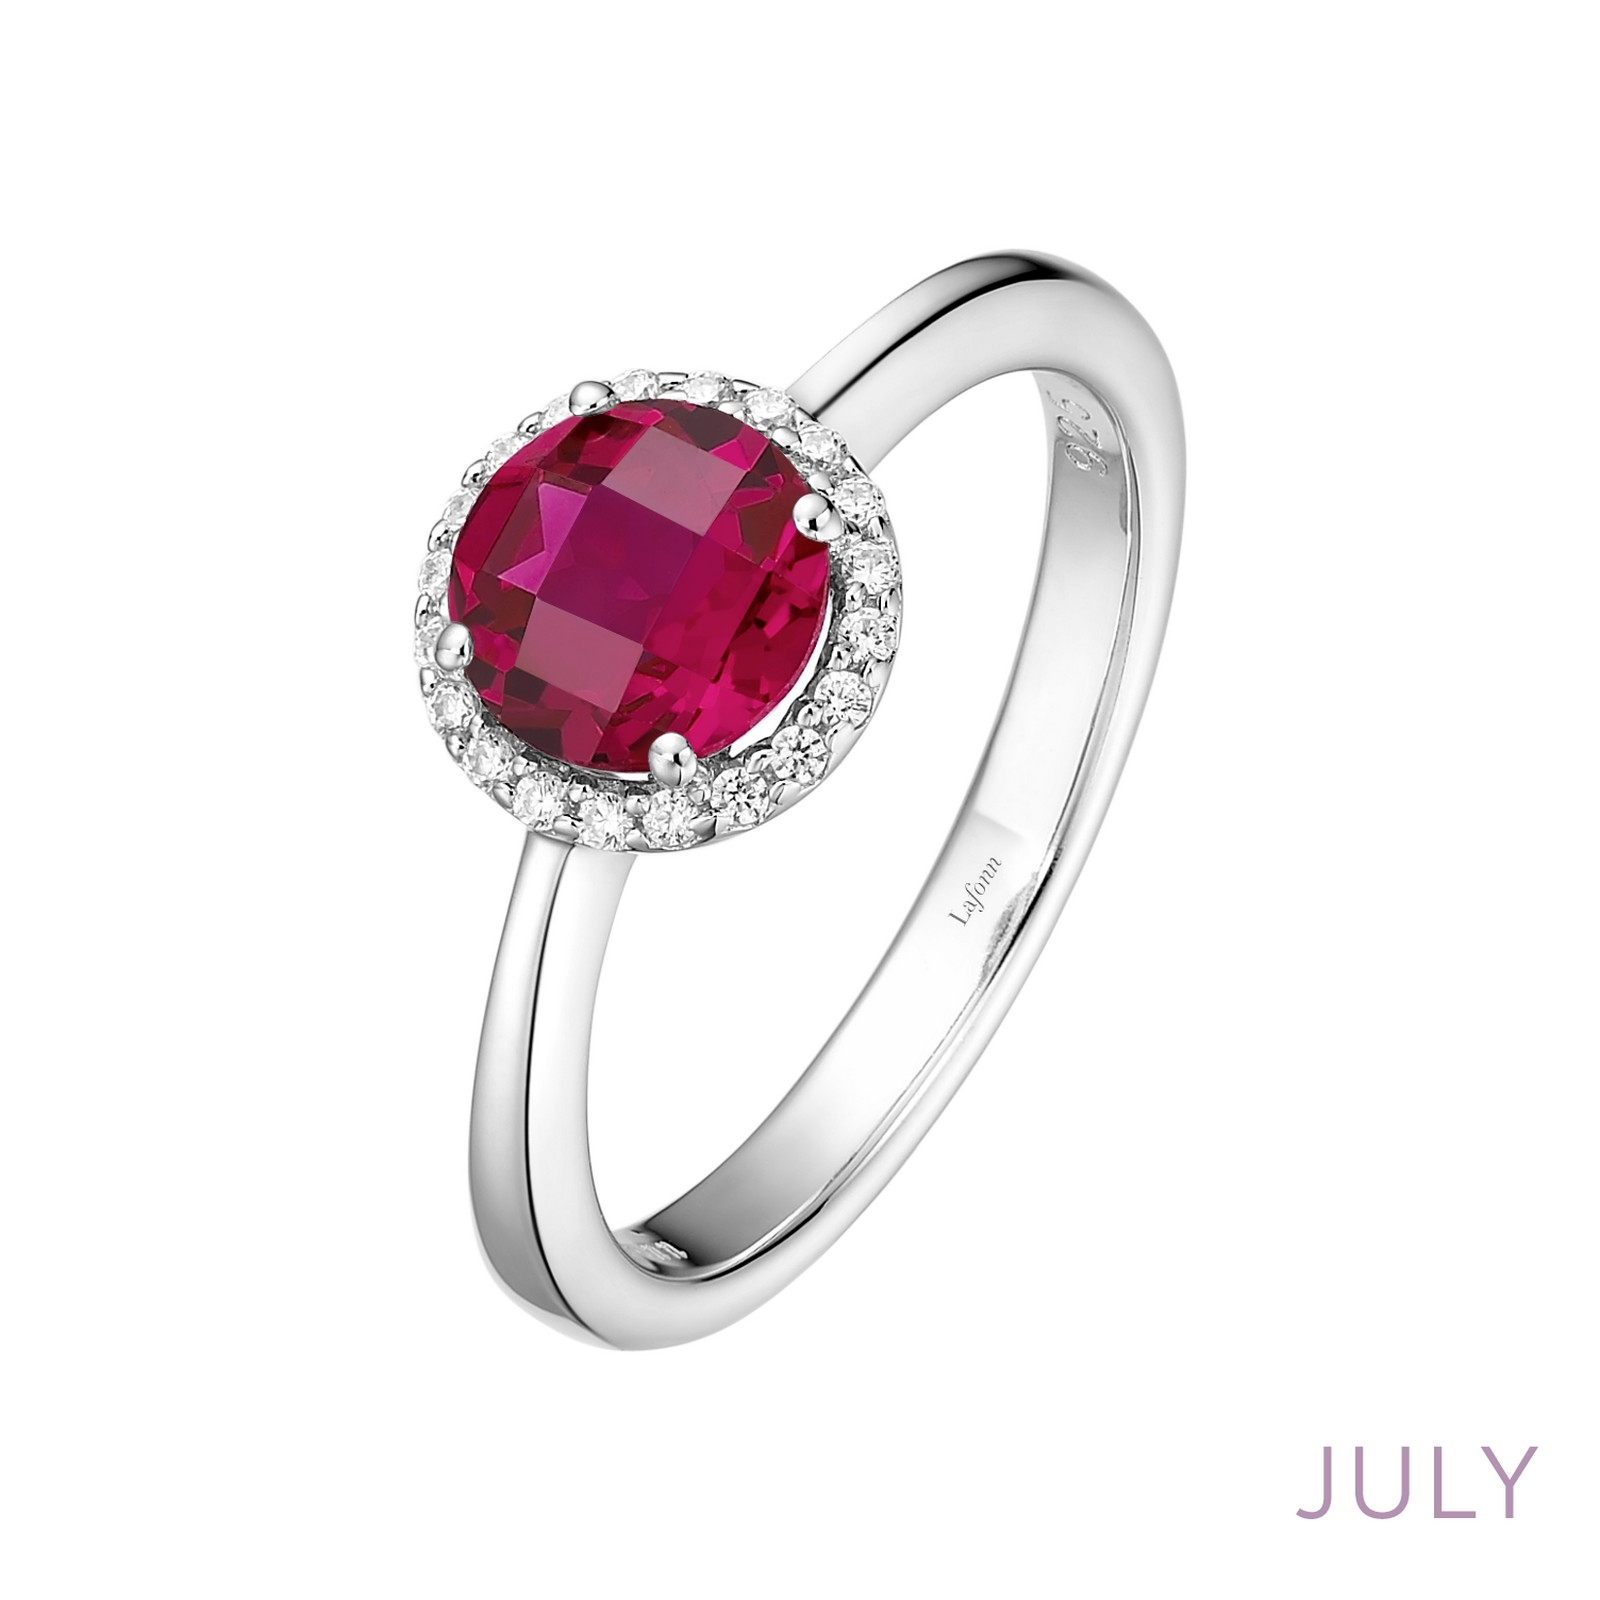 Birthstone Ring by Lafonn Jewelry